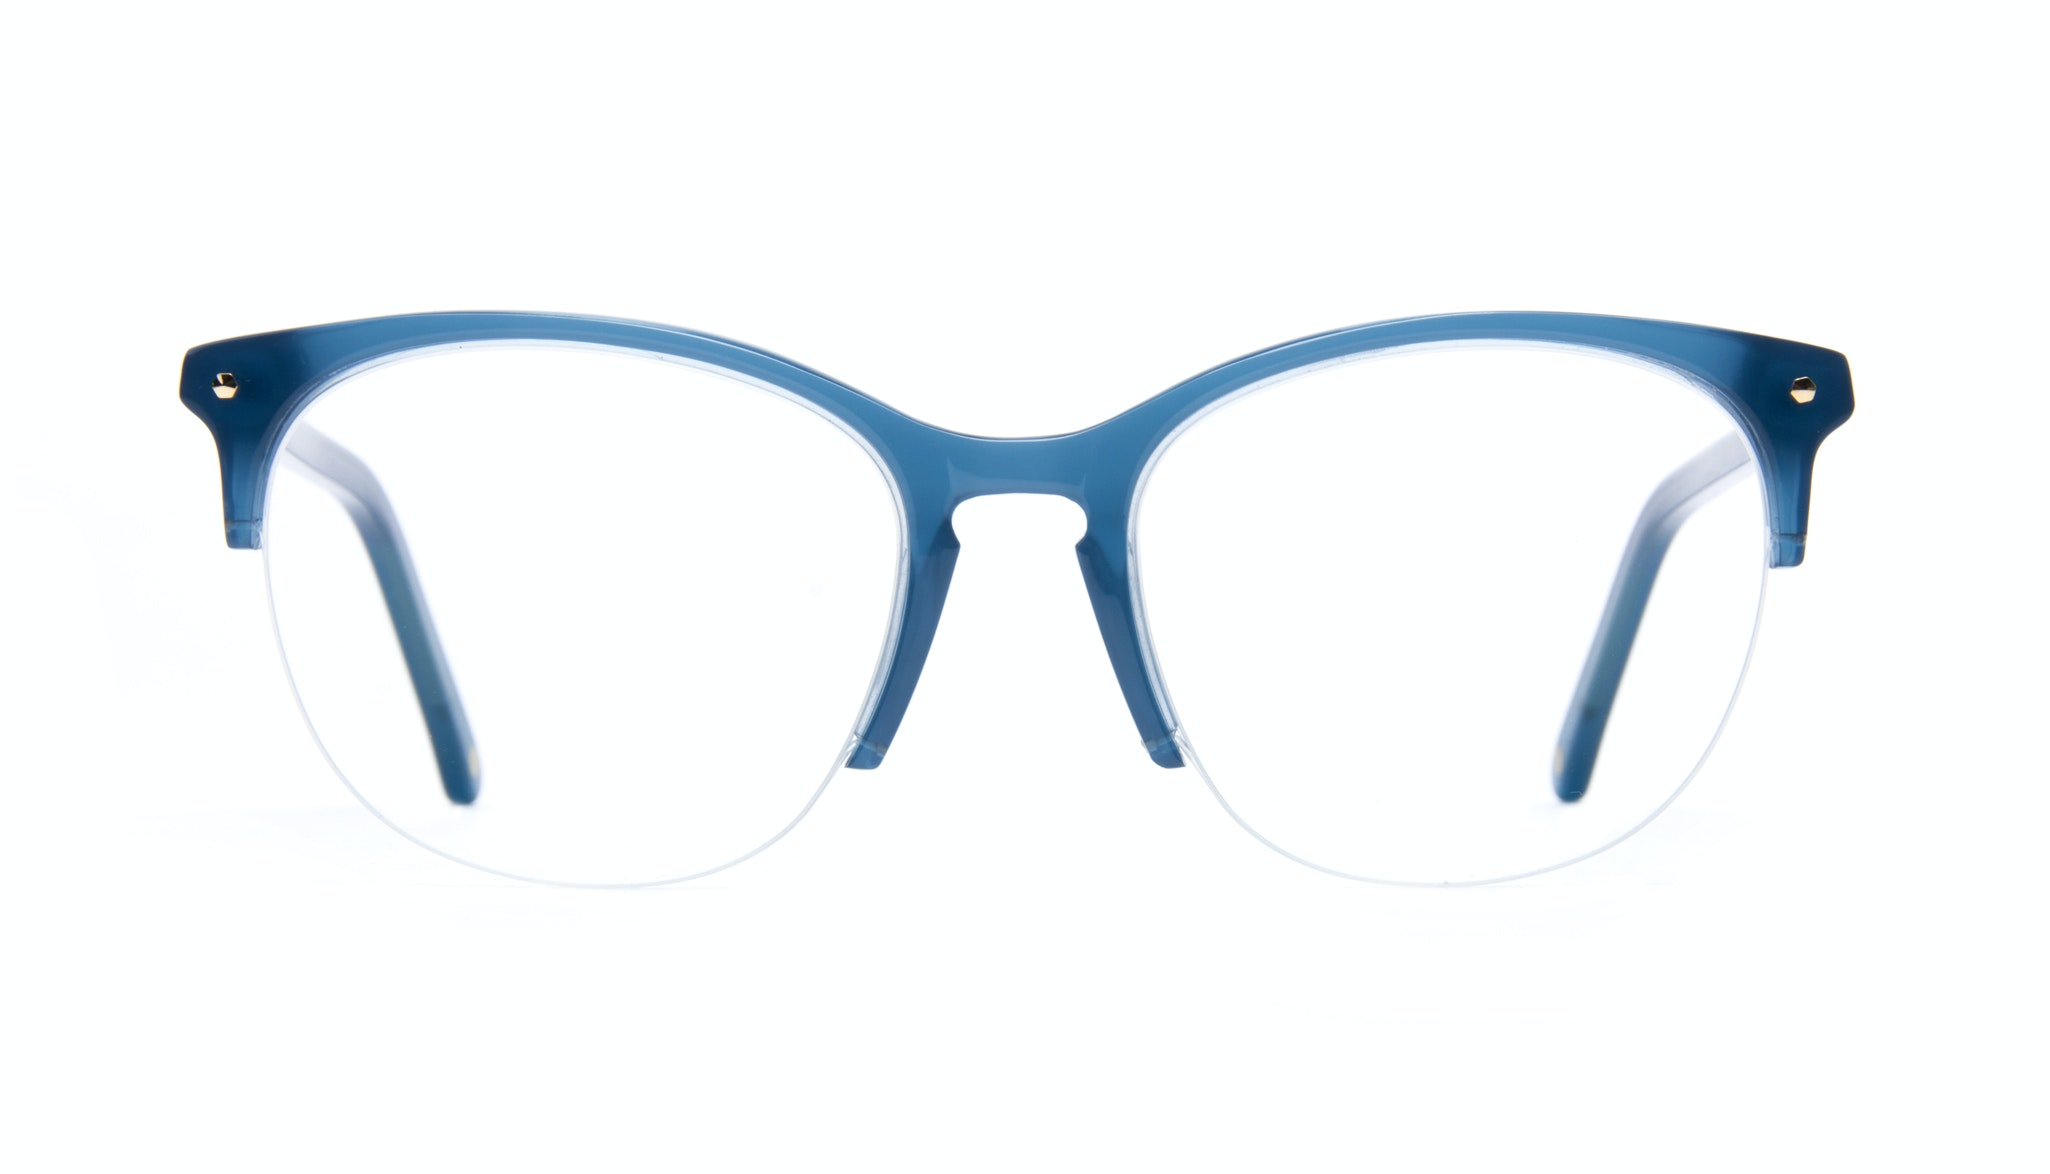 Affordable Fashion Glasses Rectangle Square Round Semi-Rimless Eyeglasses Women Nadine Light Marine